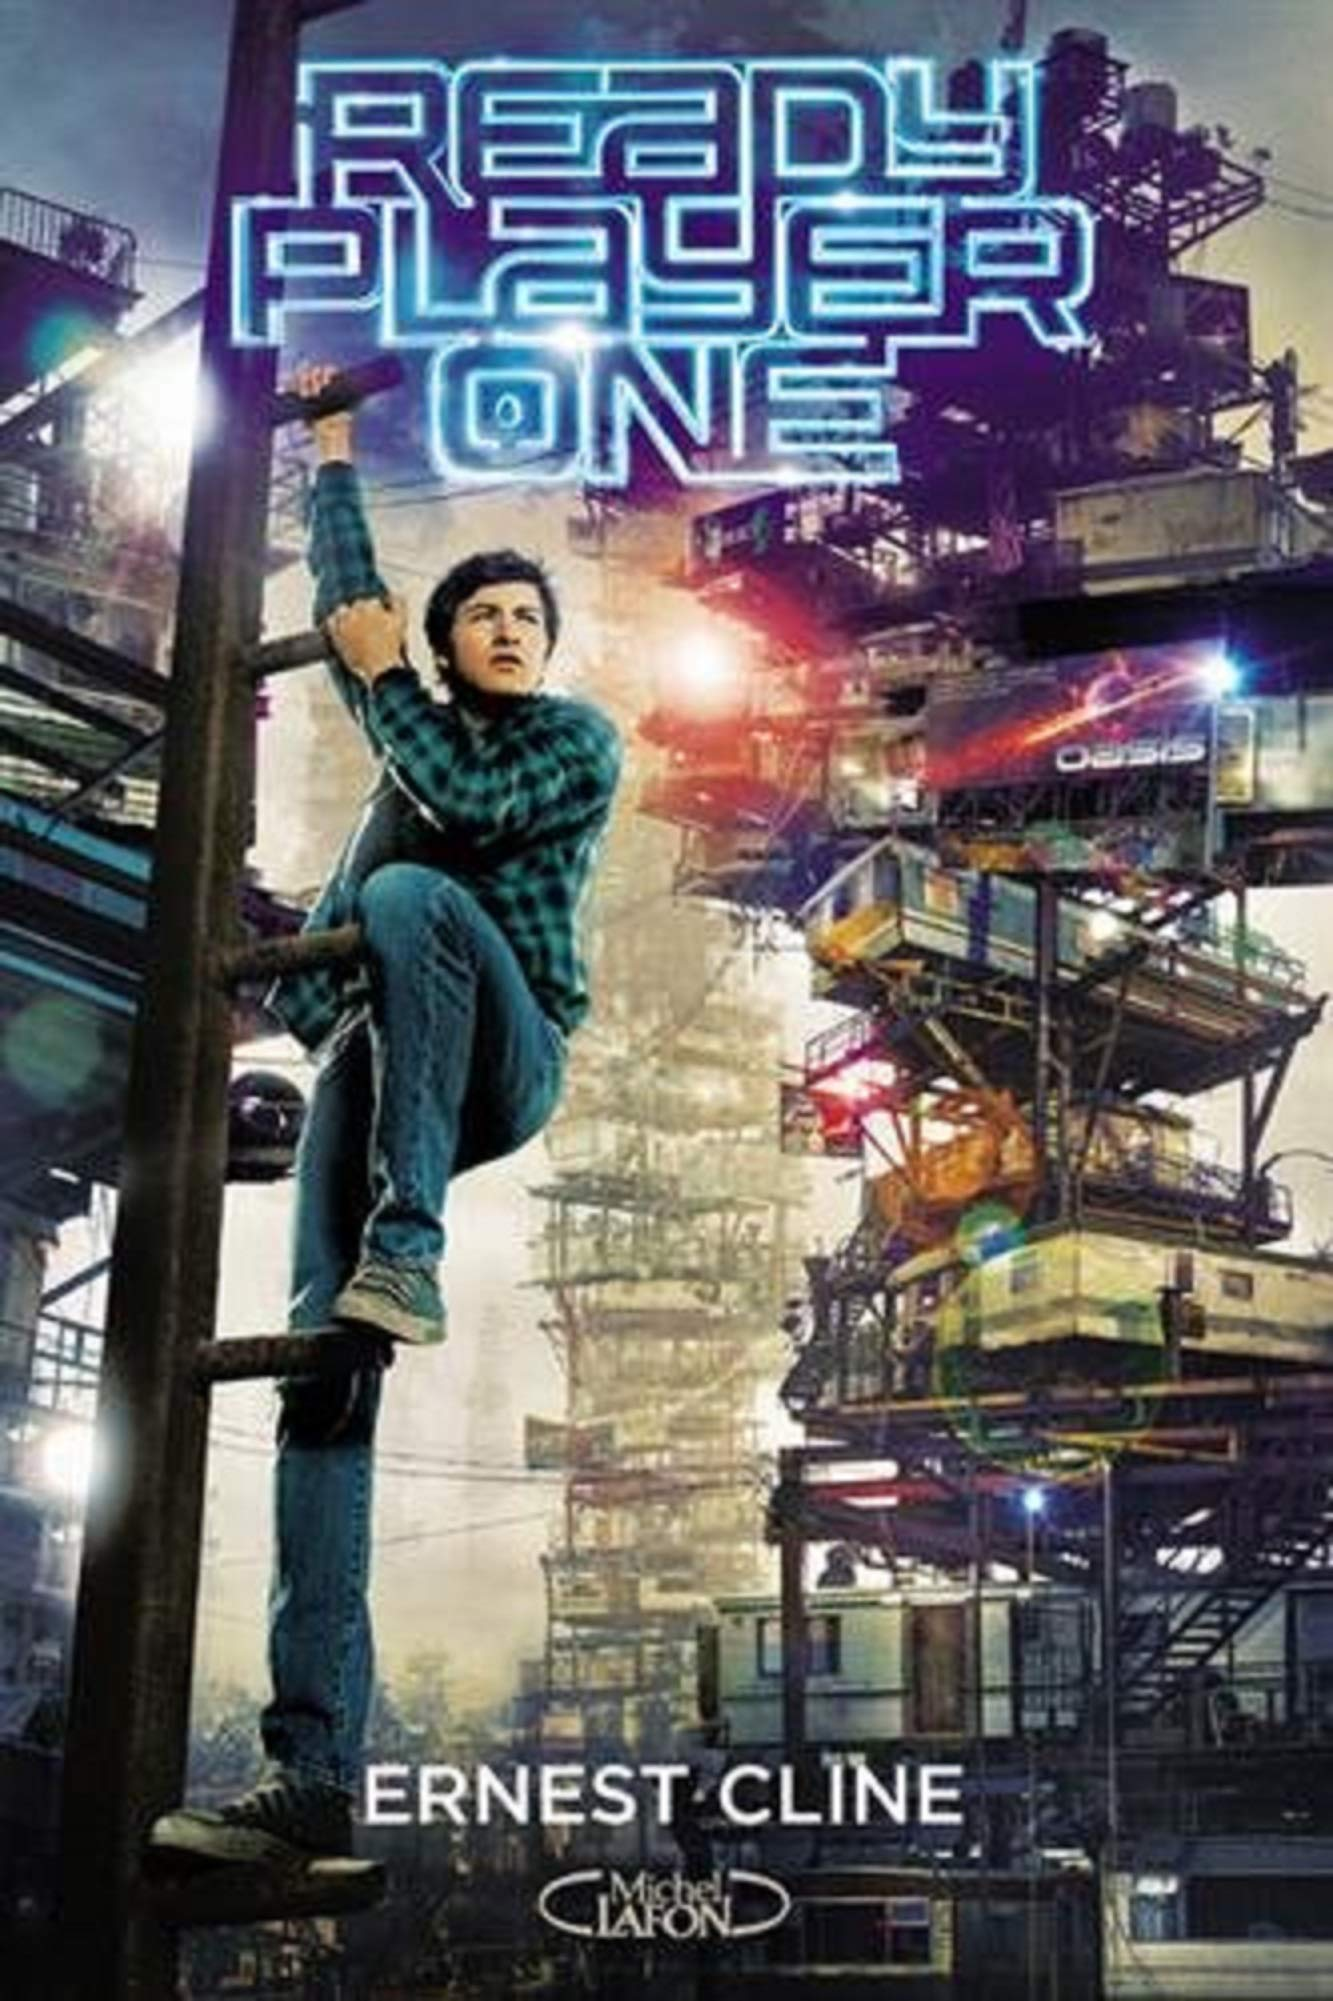 Ready Player One French Edition Cline Ernest Regnauld Arnaud 9782749935355 Amazon Com Books